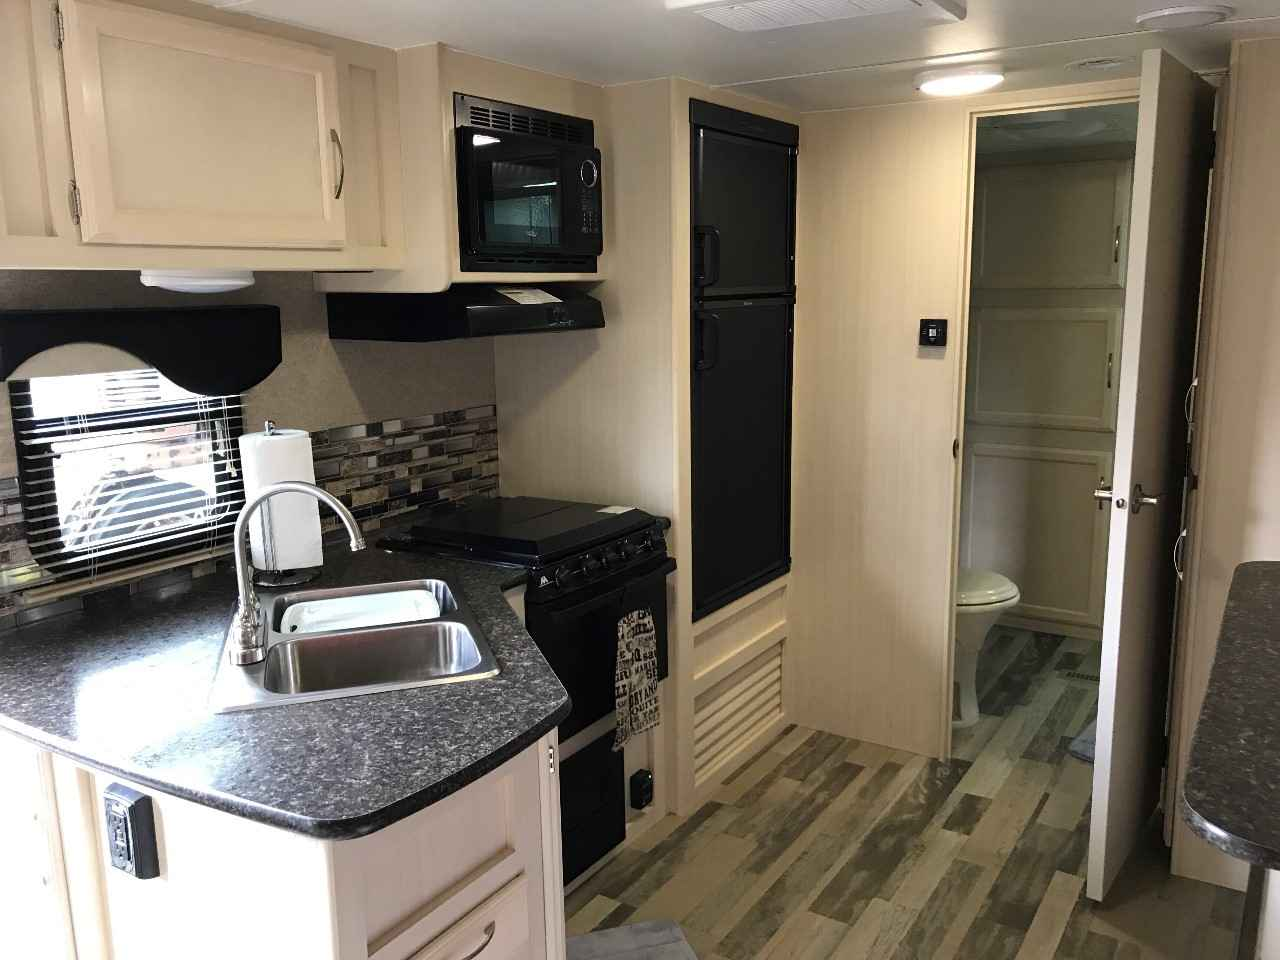 Campers For Sale Near Me >> aeonhart.com Winnebago Minnie Travel Trailer Used With Excellent Styles 32